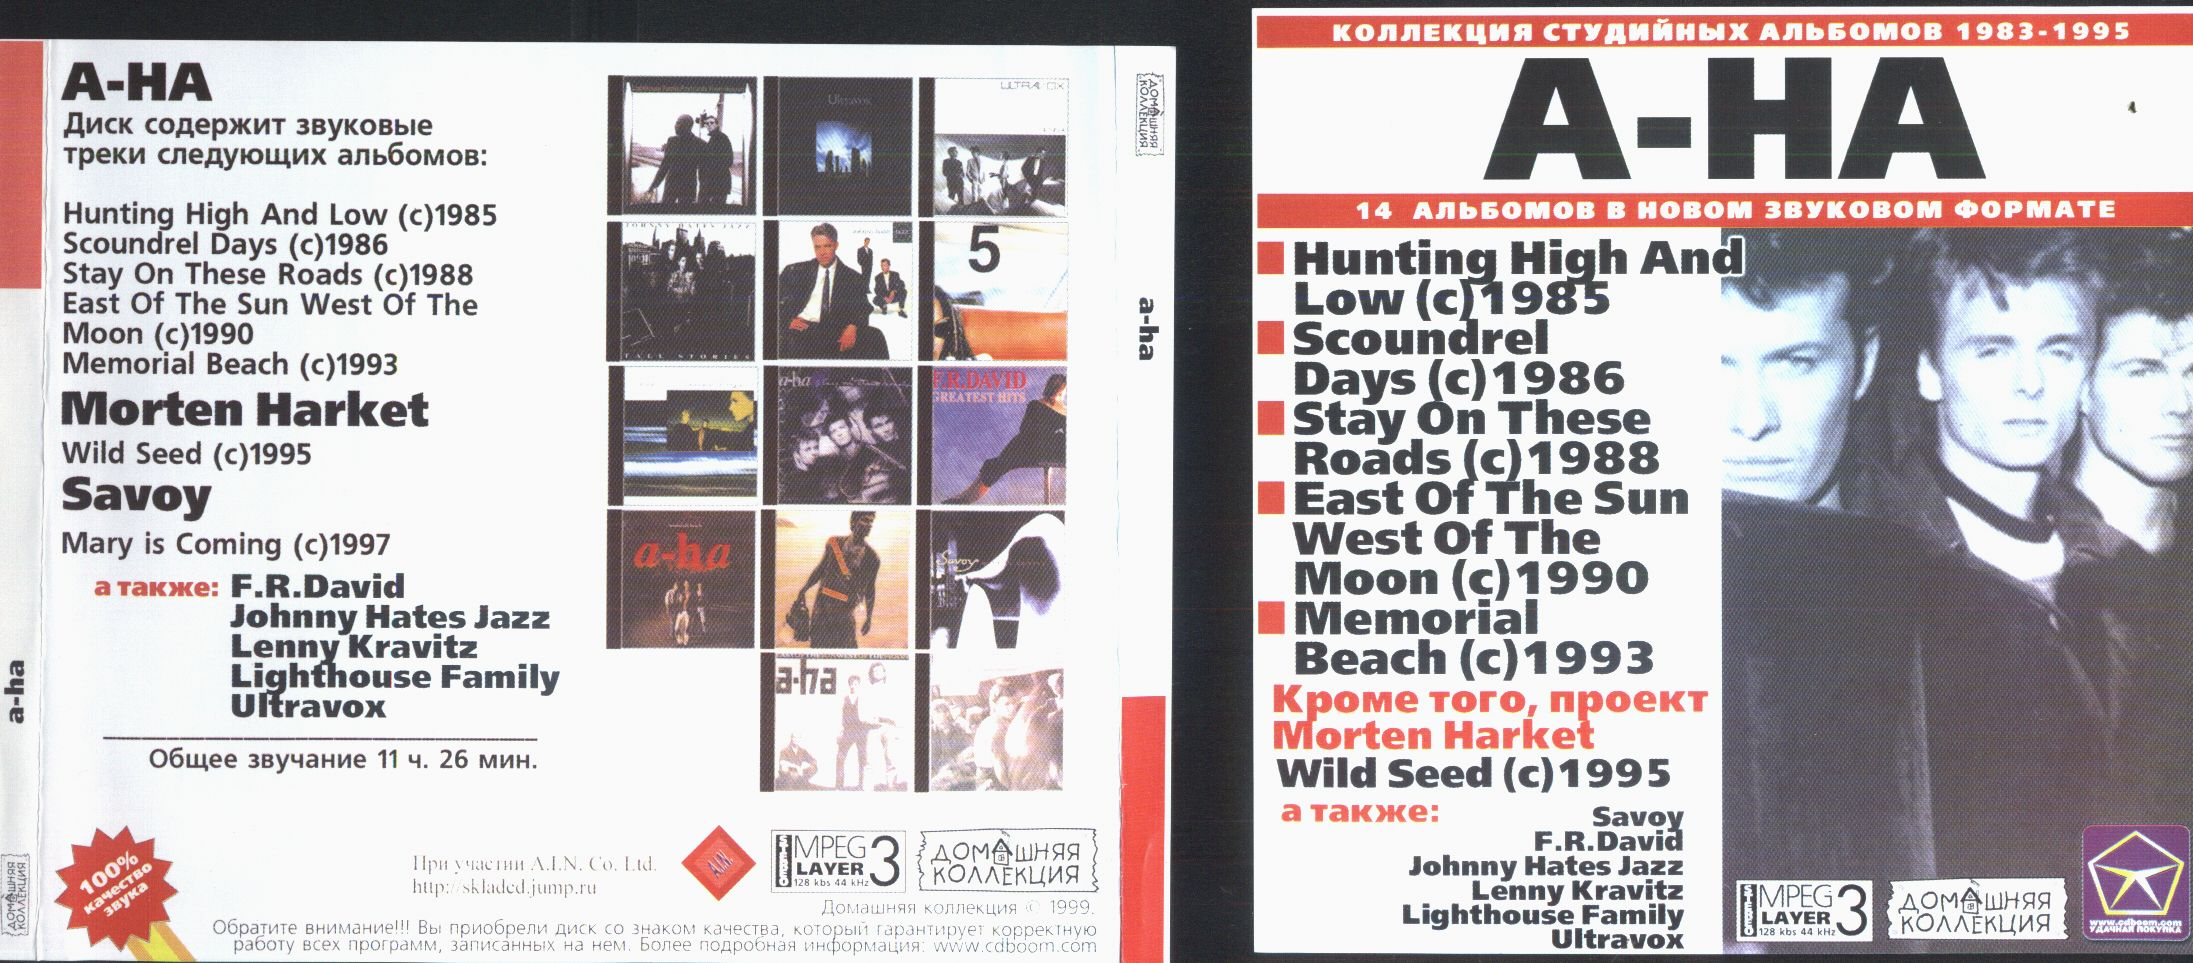 A-HA Collection including following full albums albums by AHA are following: Hunting High And Low/ scound